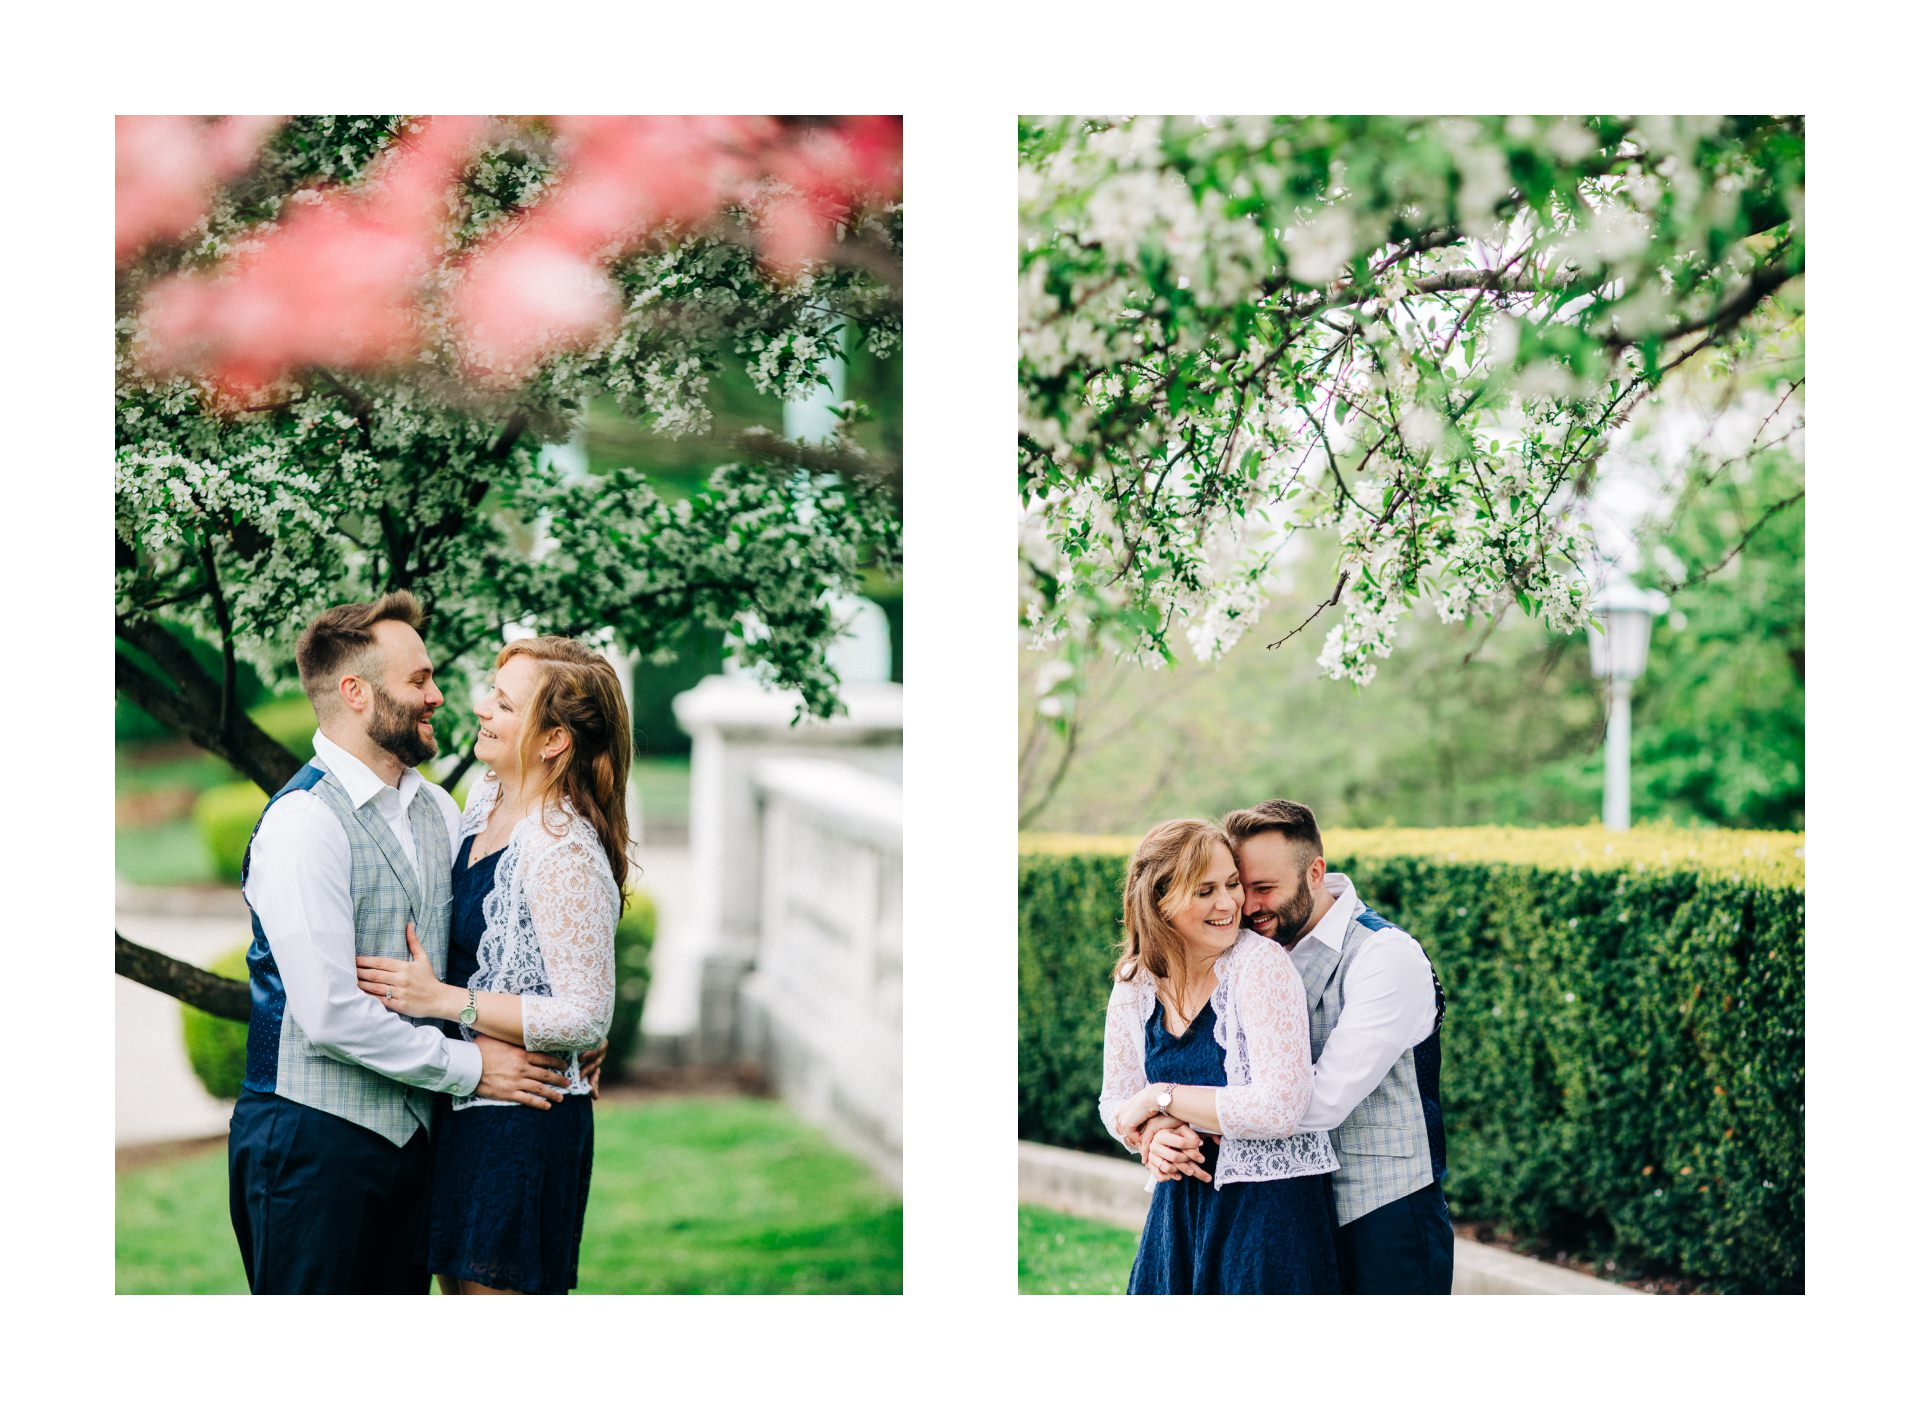 Cleveland Spring Cherry Blossom Engagement Session 7.jpg